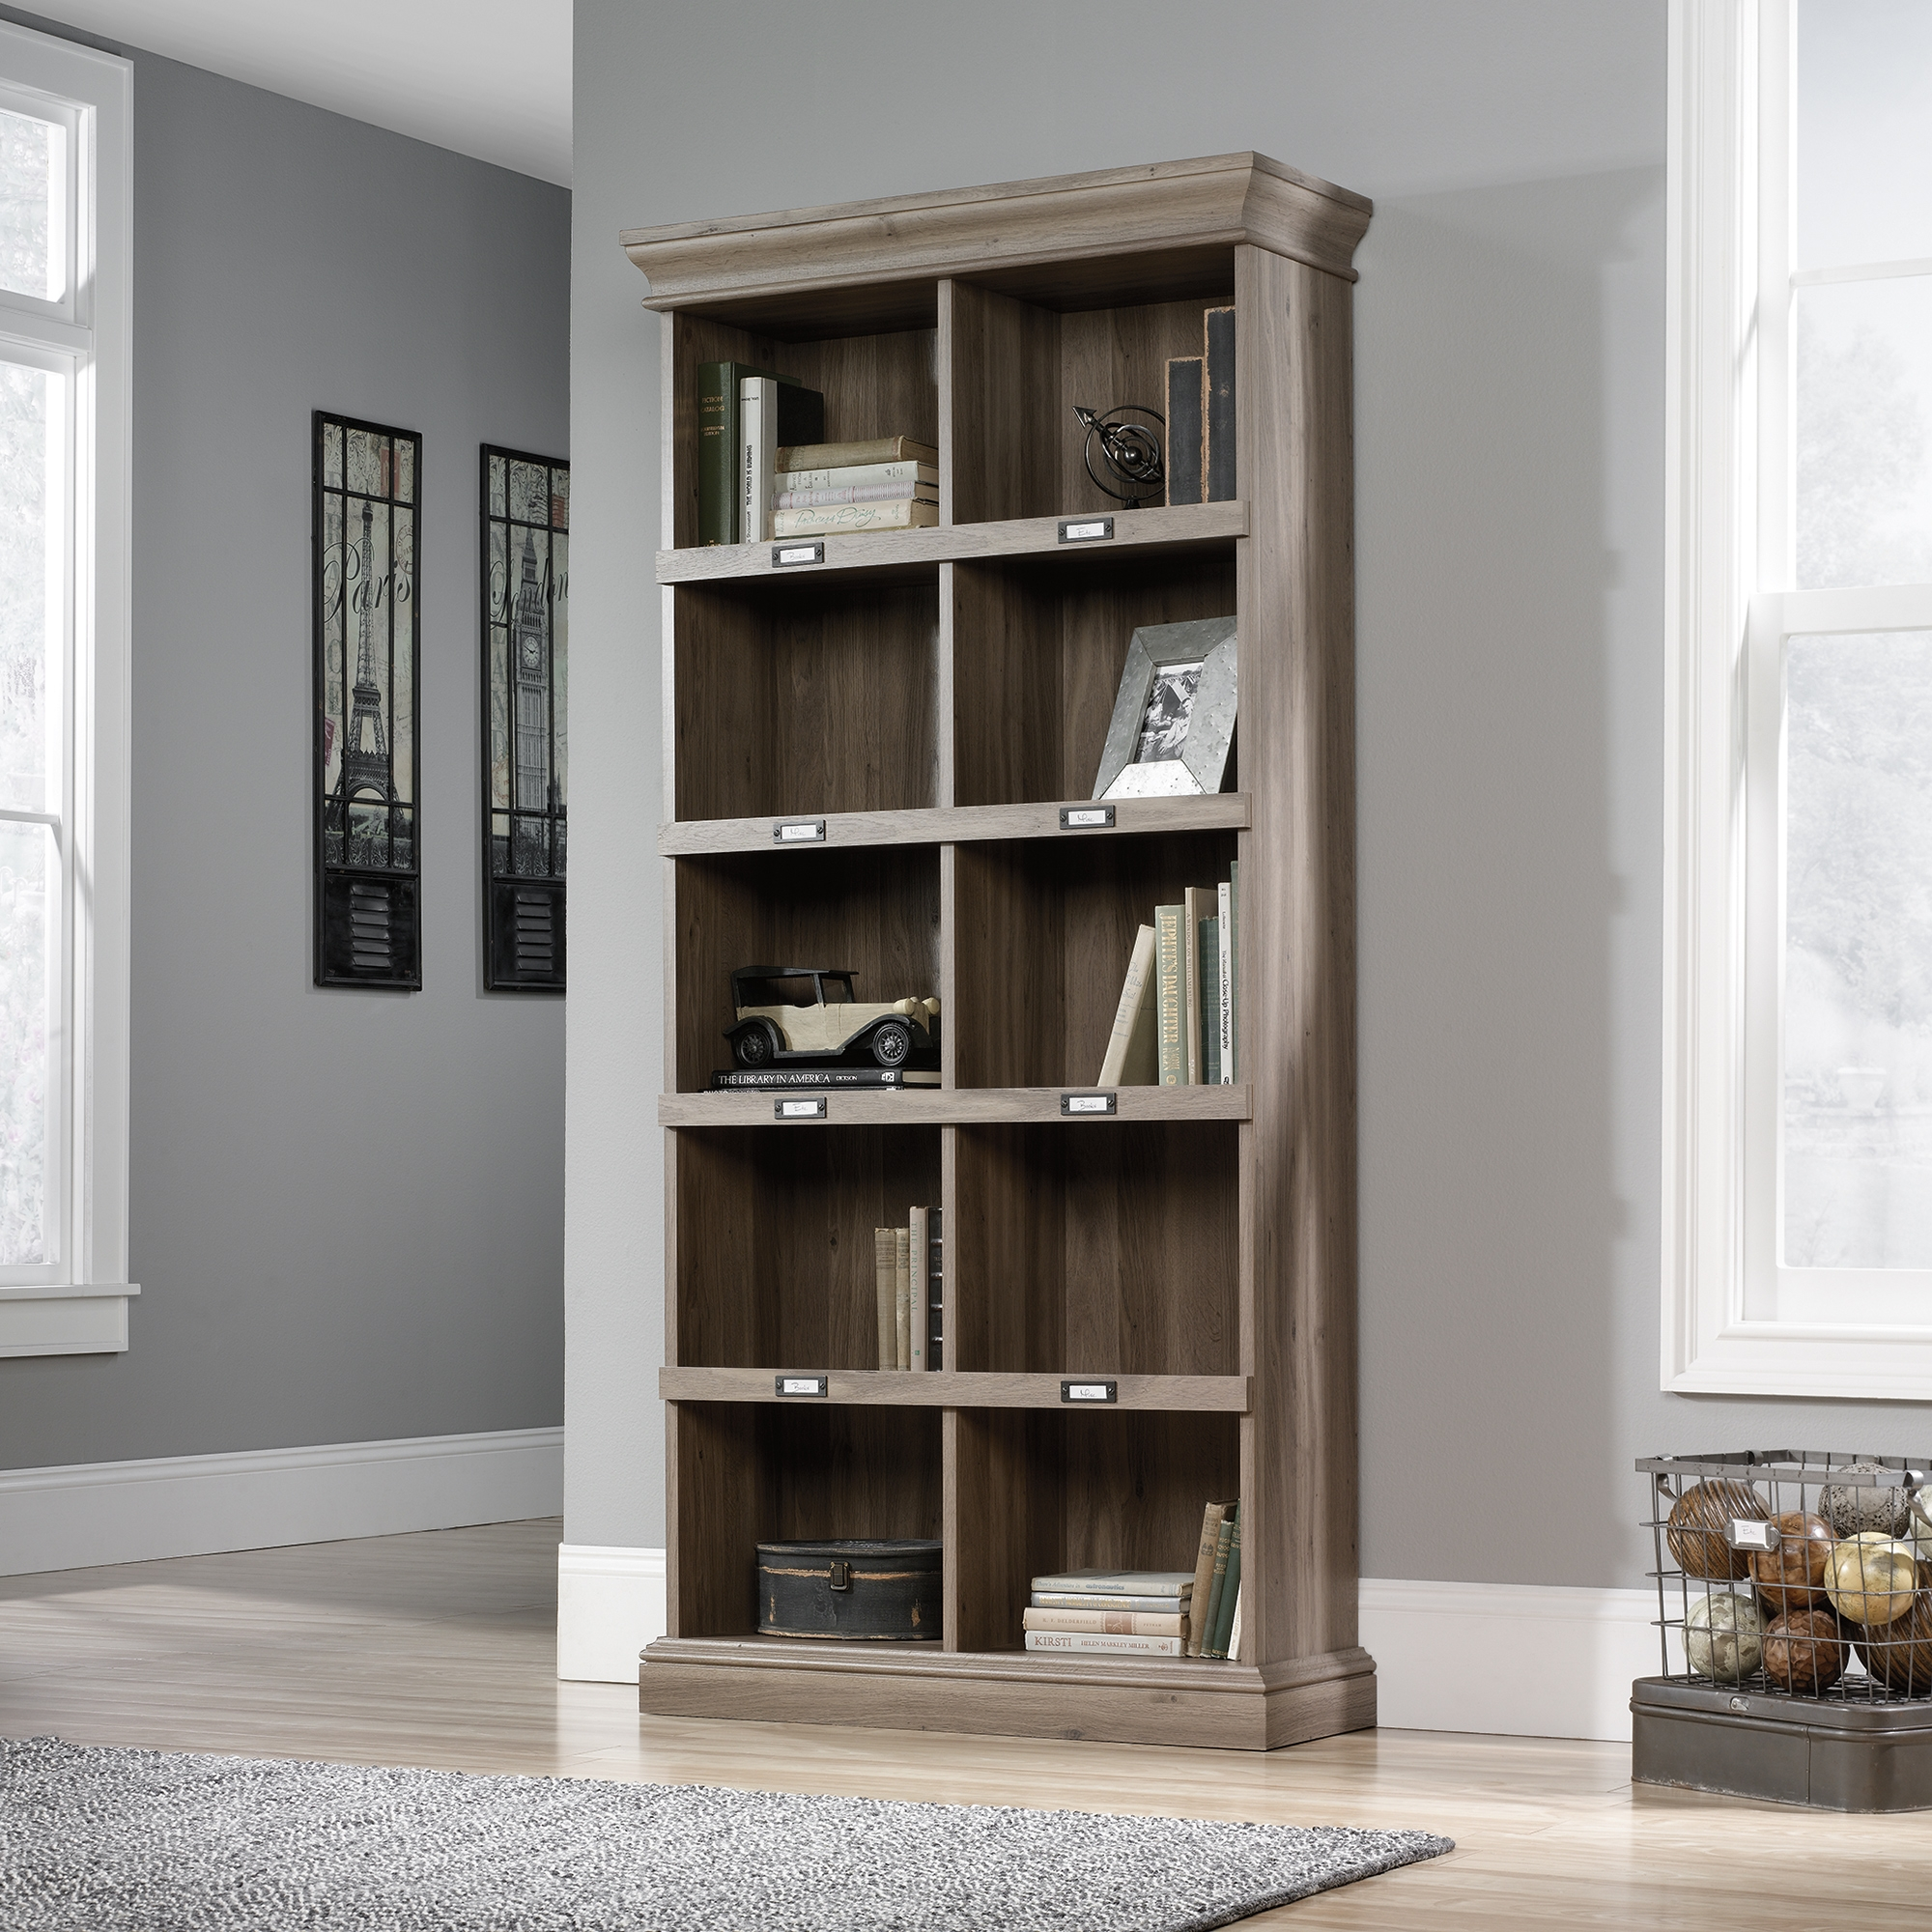 Barrister Lane Tall Bookcase 414108 Sauder With Tall Bookcases (View 5 of 15)